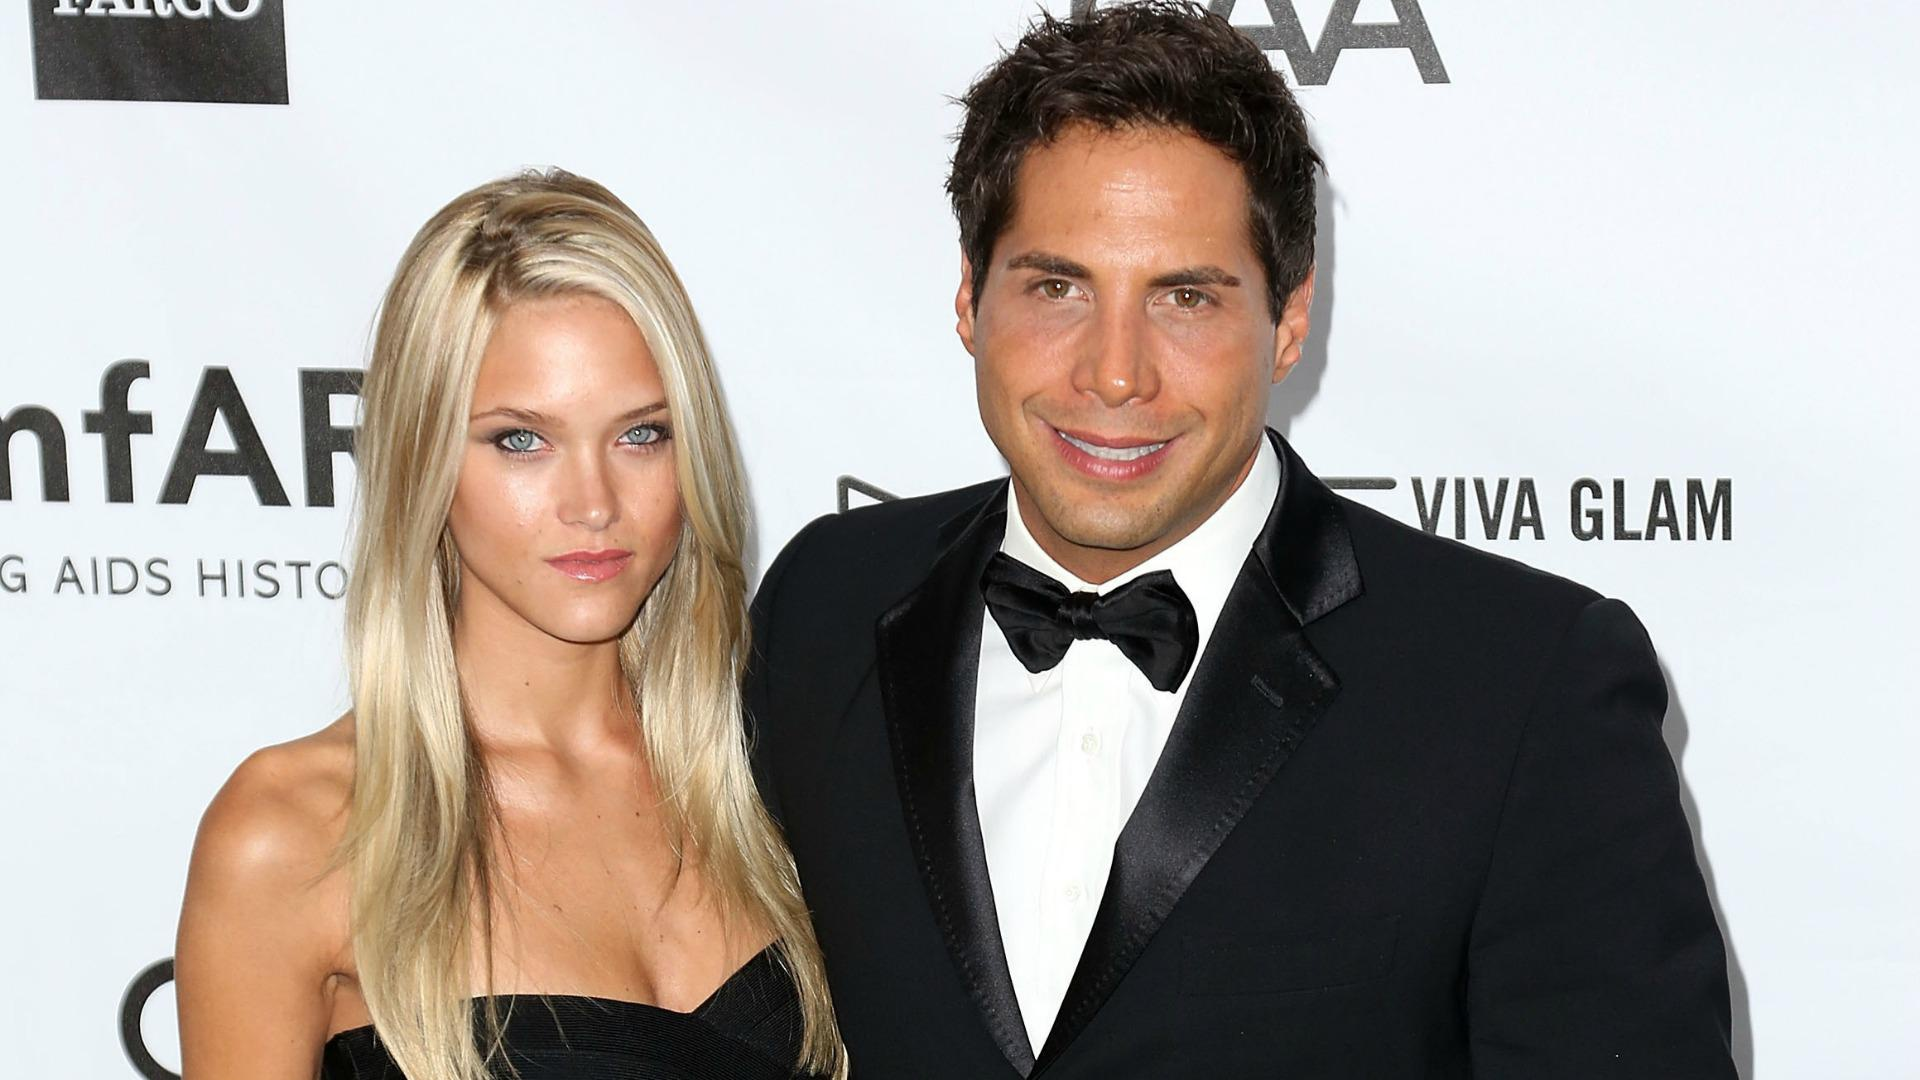 Hollywood babies! Joe Francis' gf can't wait to be a mom